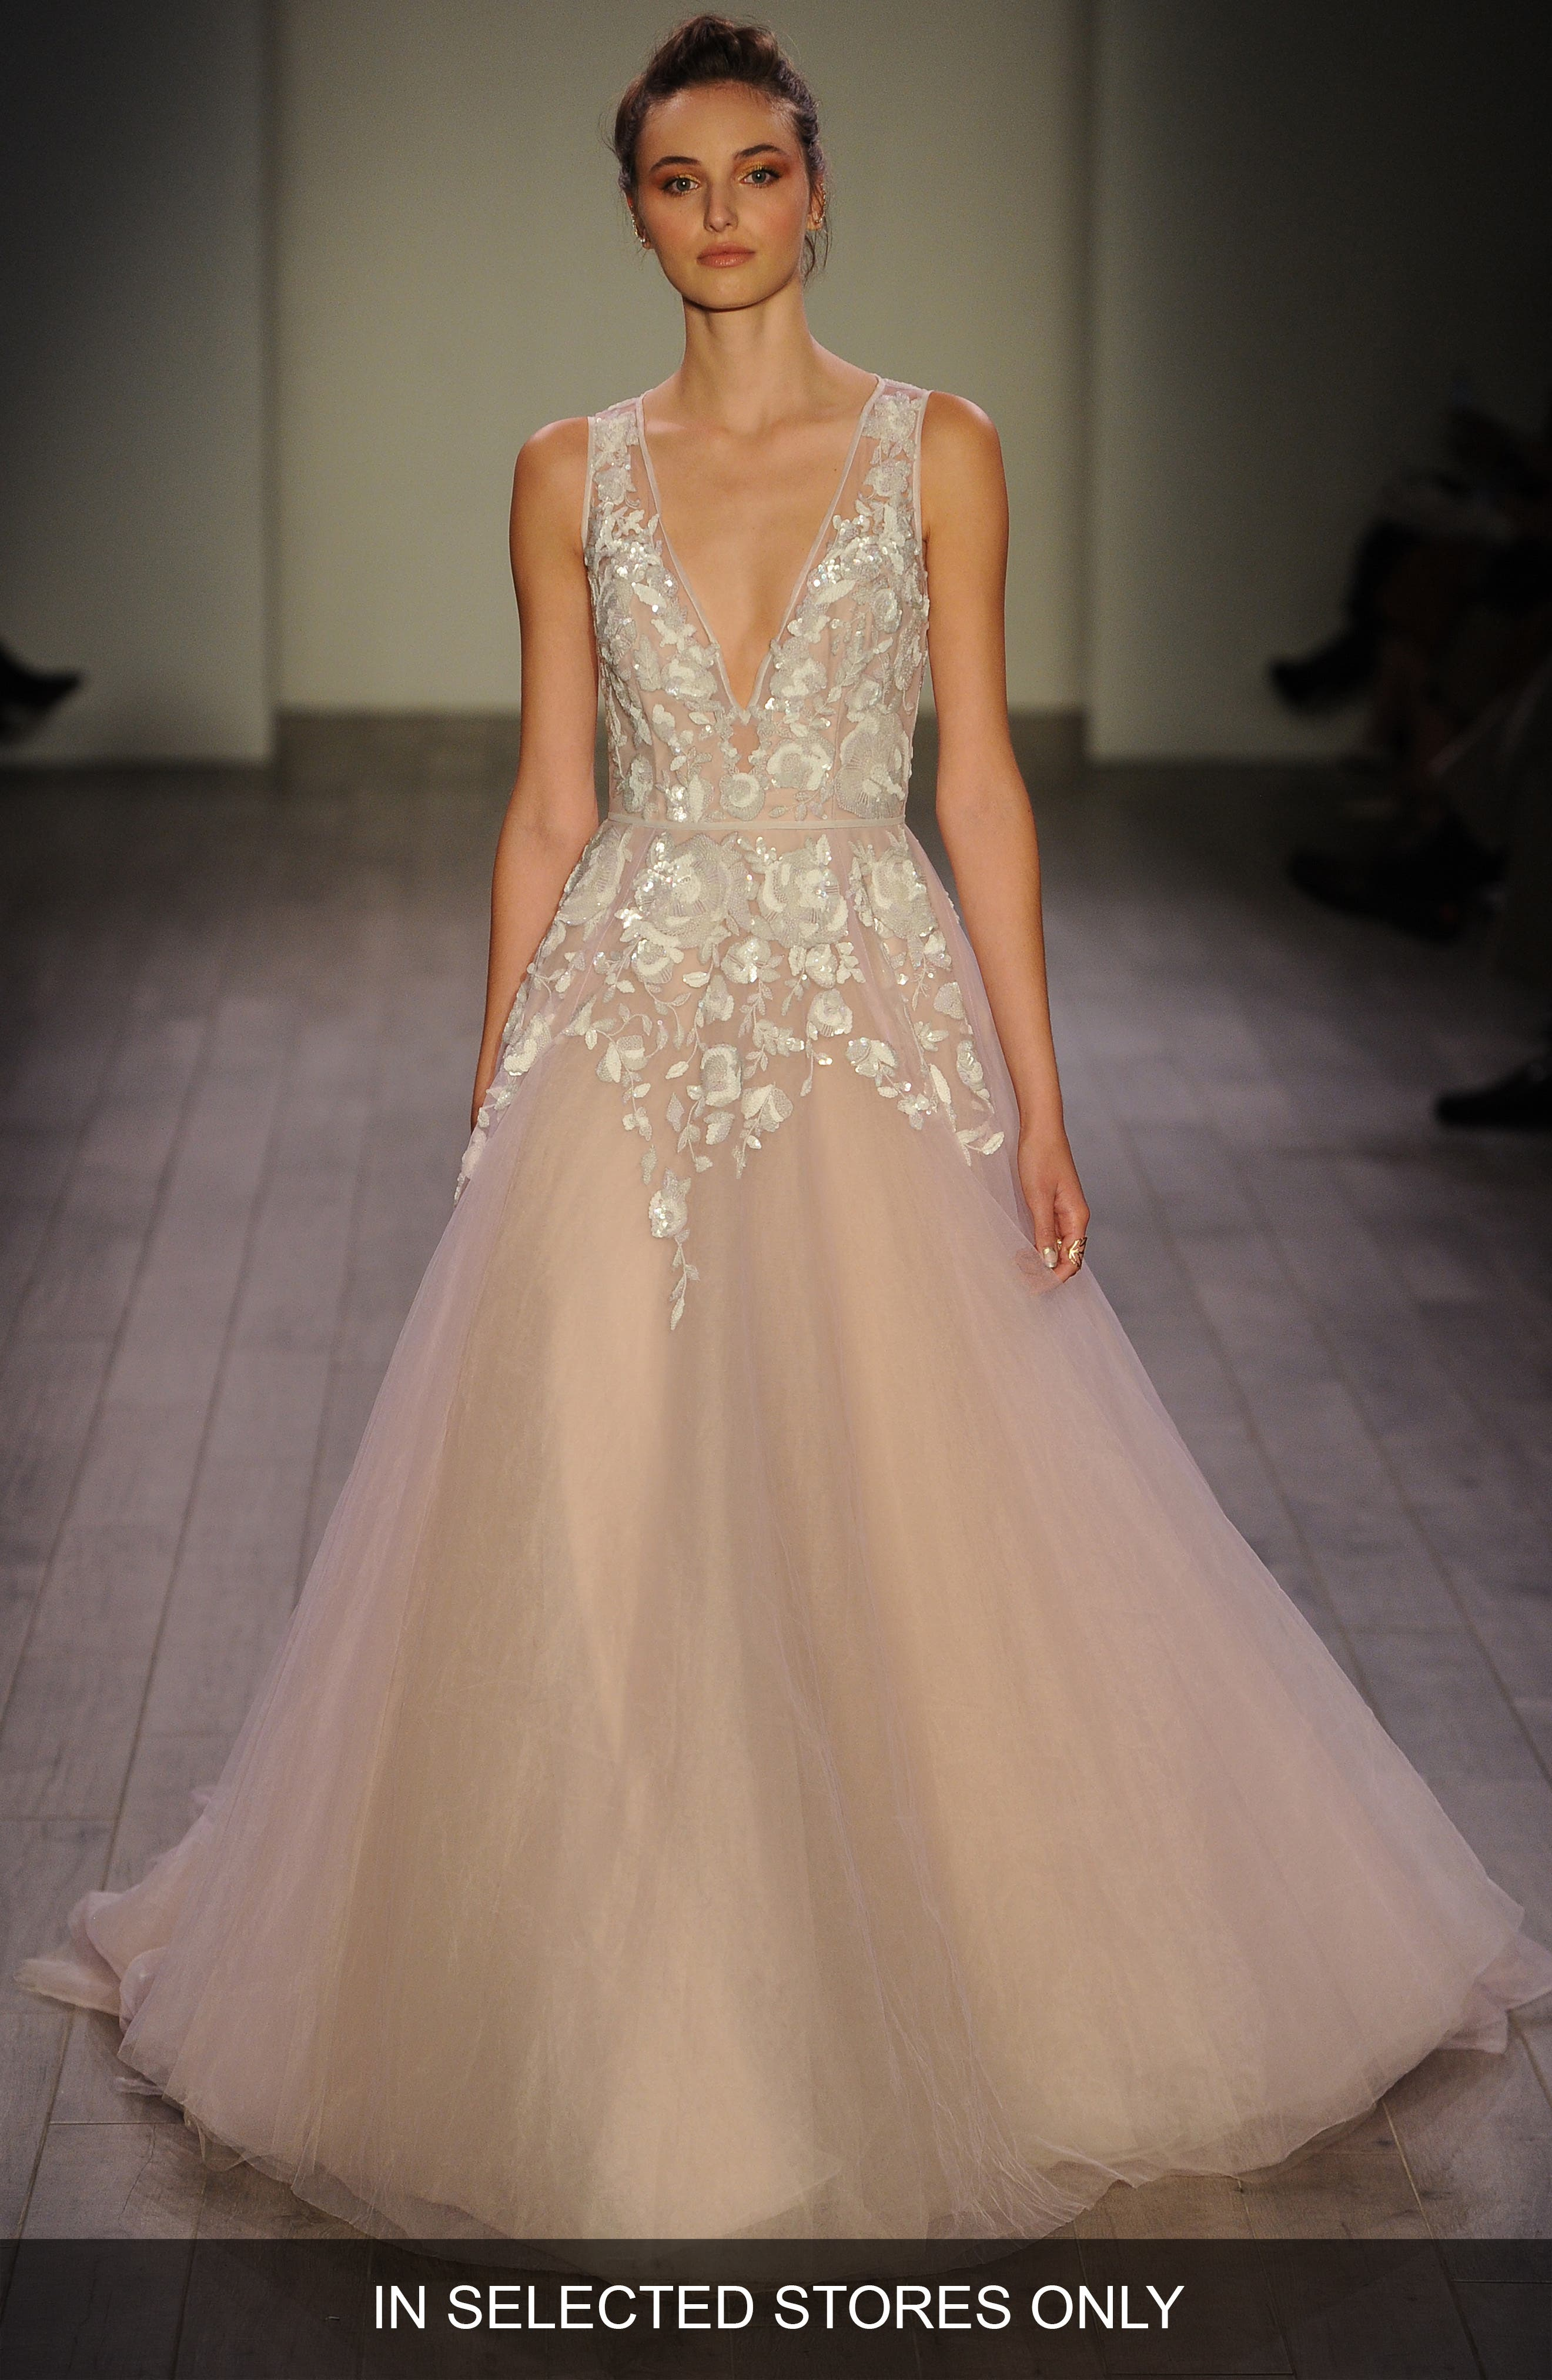 Alternate Image 1 Selected - Hayley Paige Leah Floral Sequin V-Neck Tulle Ballgown